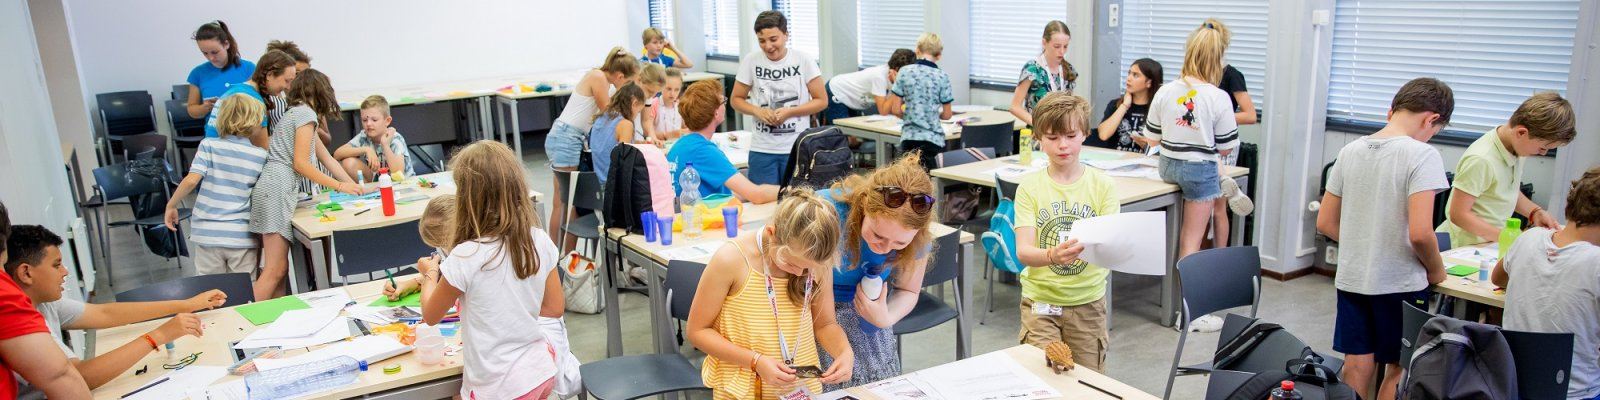 Summerschool Junior 2019